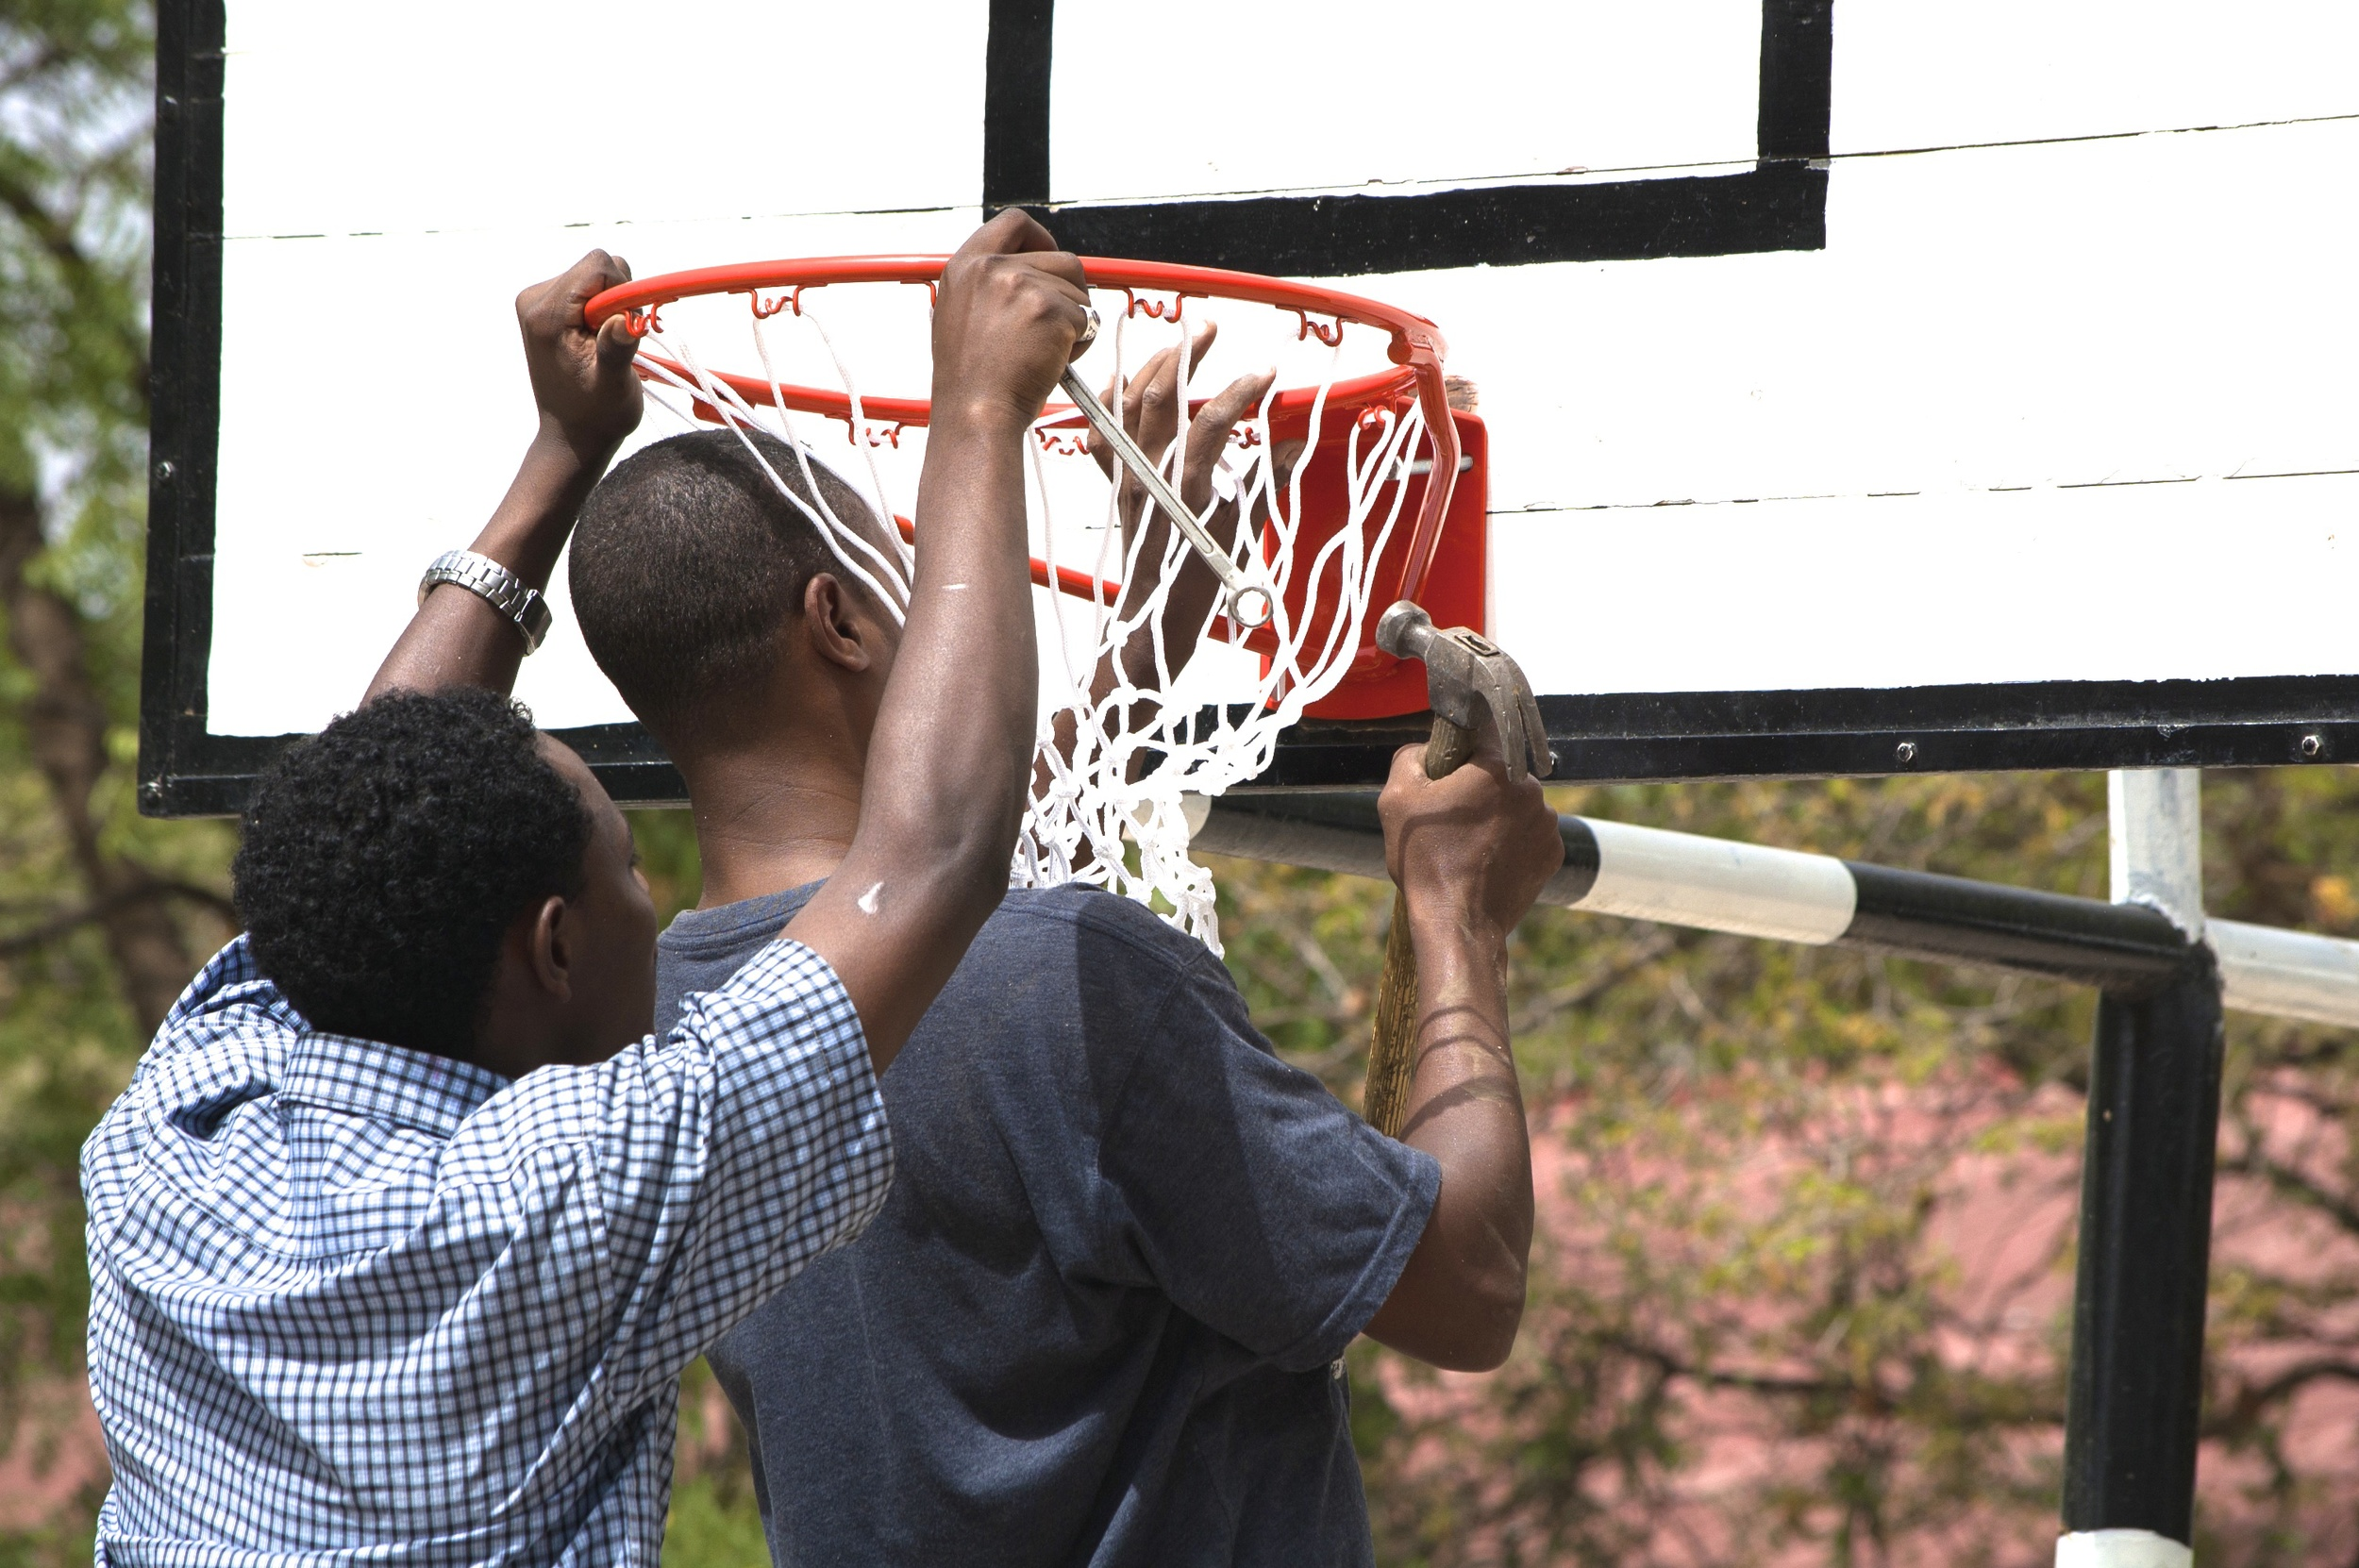 Putting up the new basketball rim and net.